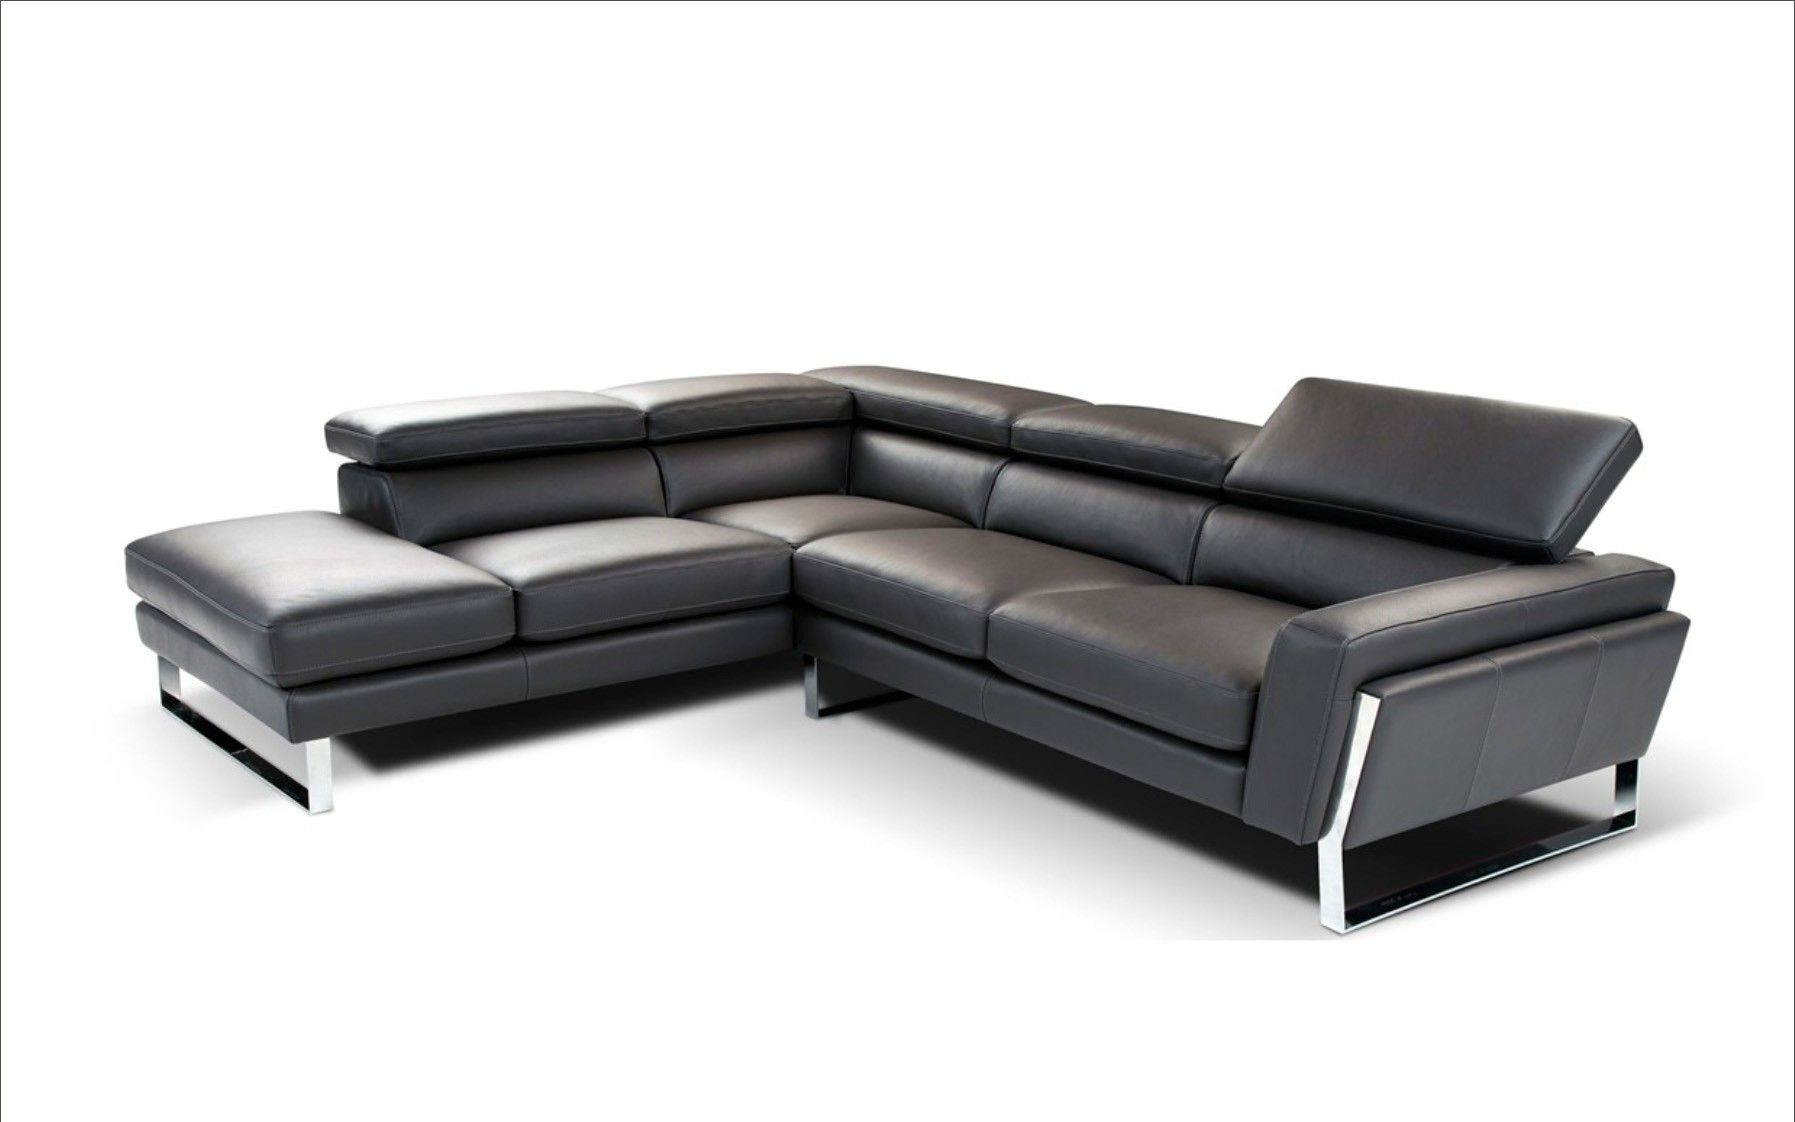 Napoli Modern Black Italian Leather Sectional Sofa Italian Leather Sectional Sofa Modern Sofa Sectional Leather Sectional Sofa